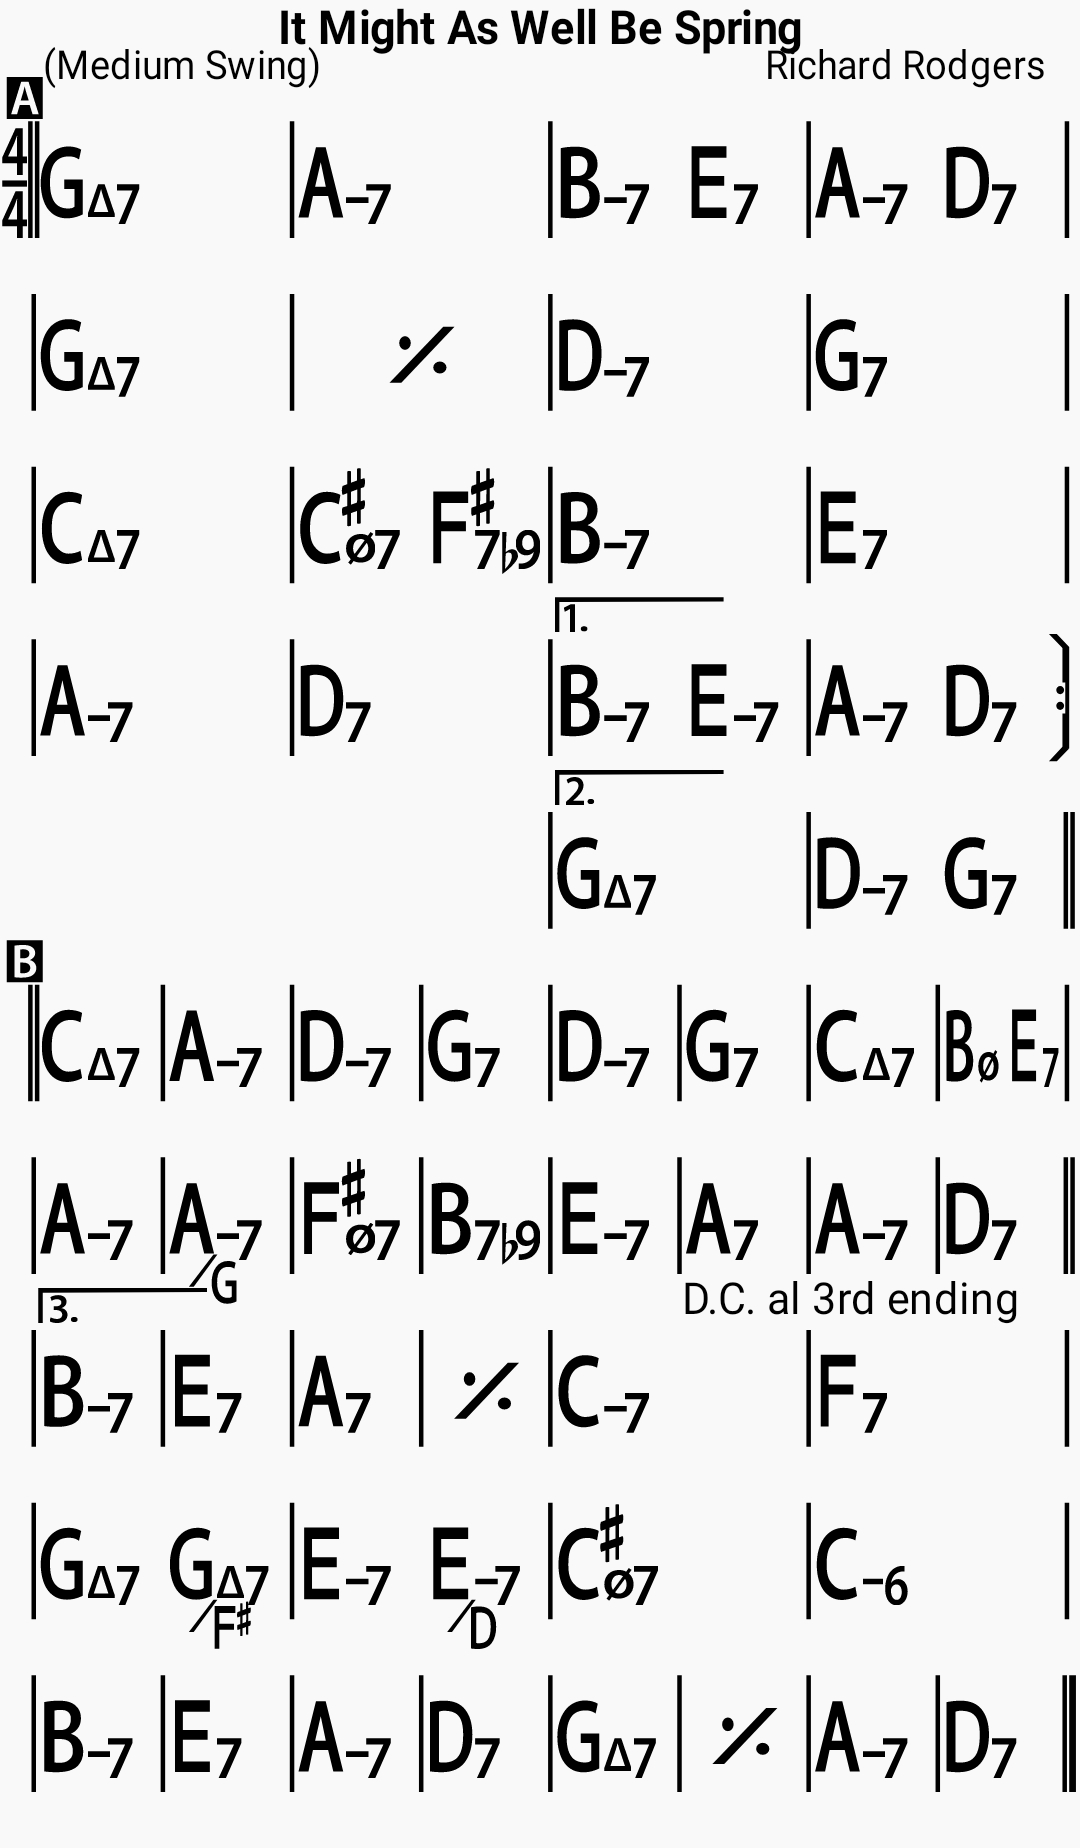 Chord chart for the jazz standard It Might As Well Be Spring